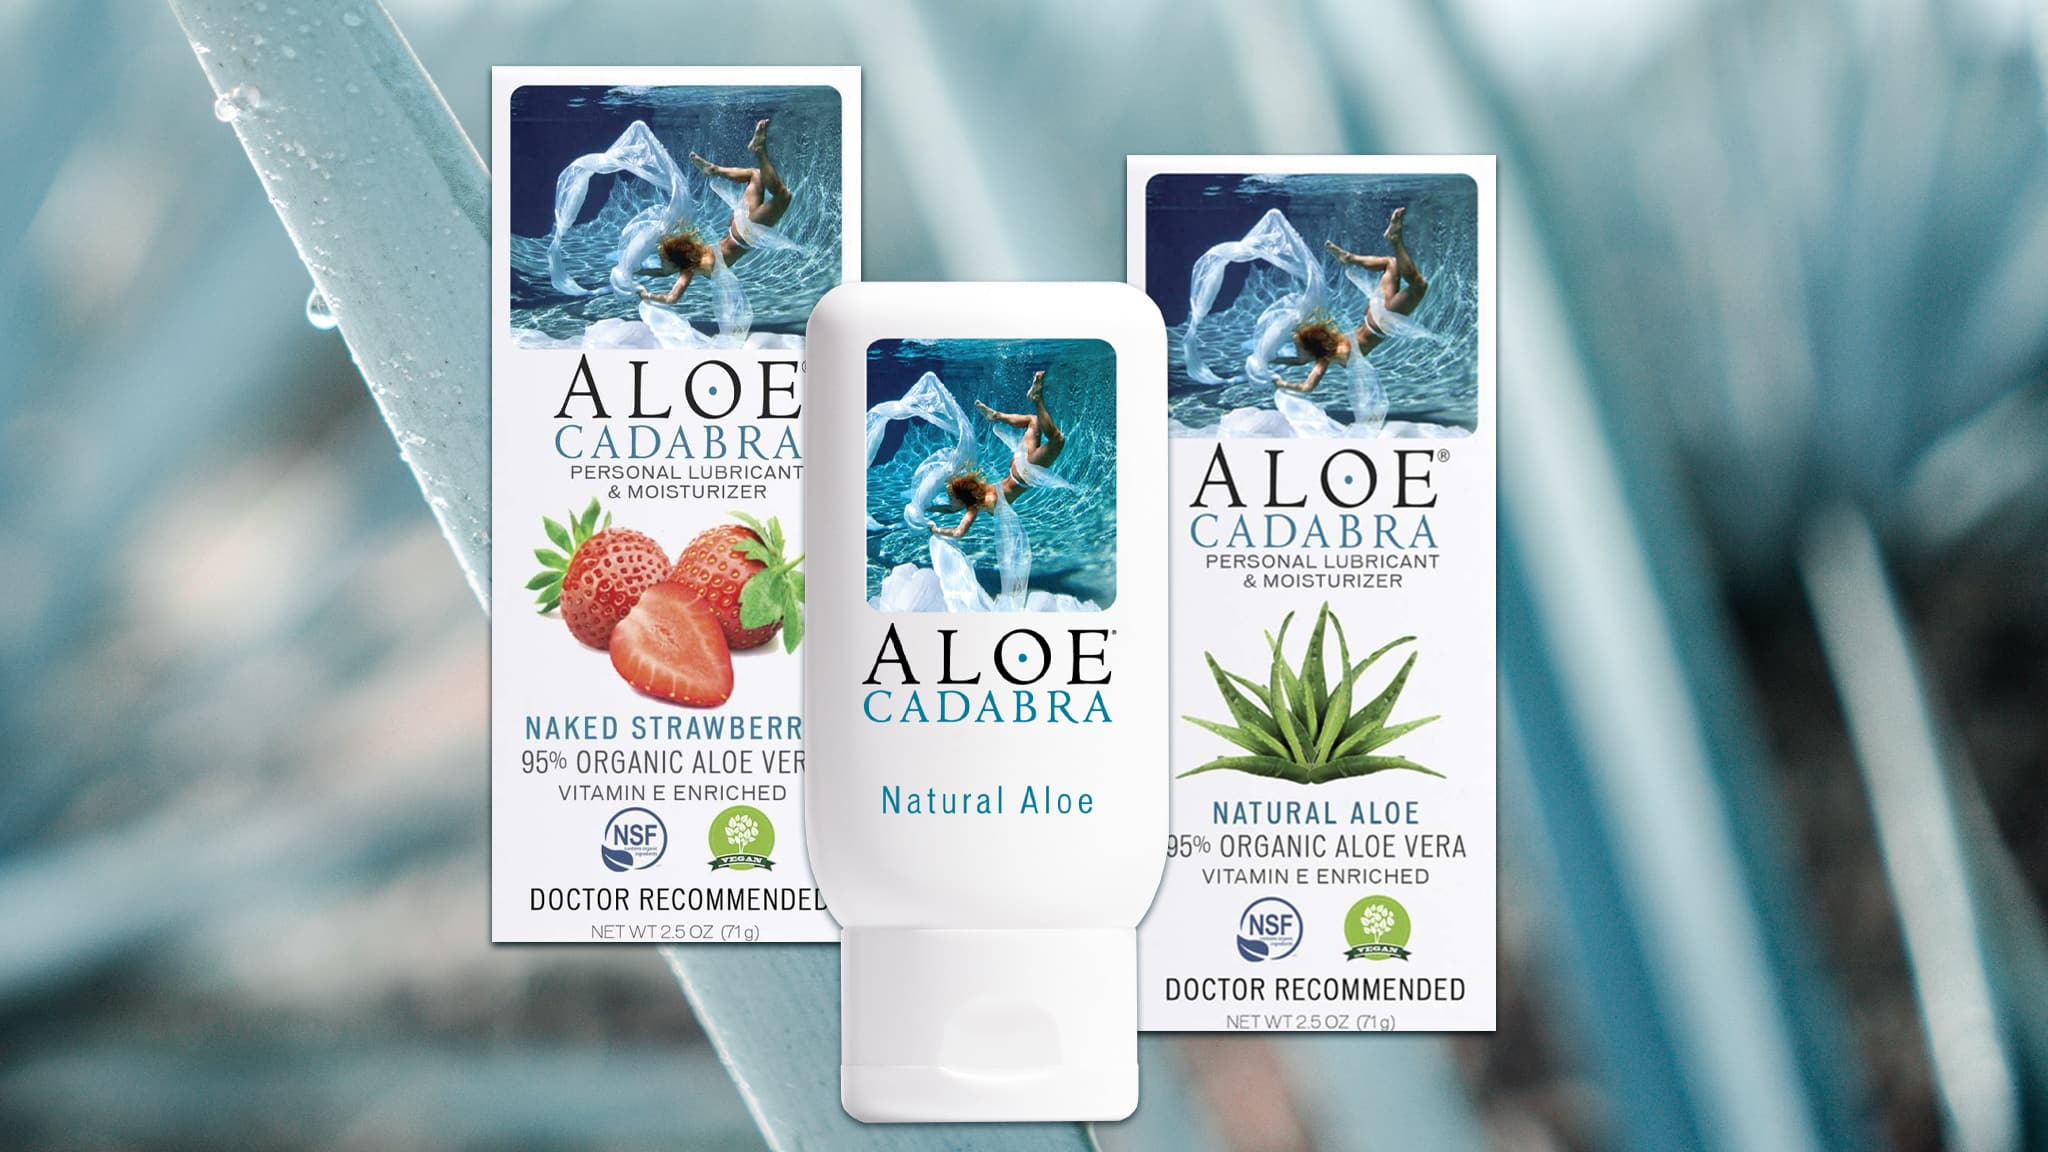 Photo Collage Of Aloe Cadabra Bottle And Boxes Against Aloe Plant Background, Soothing Concept